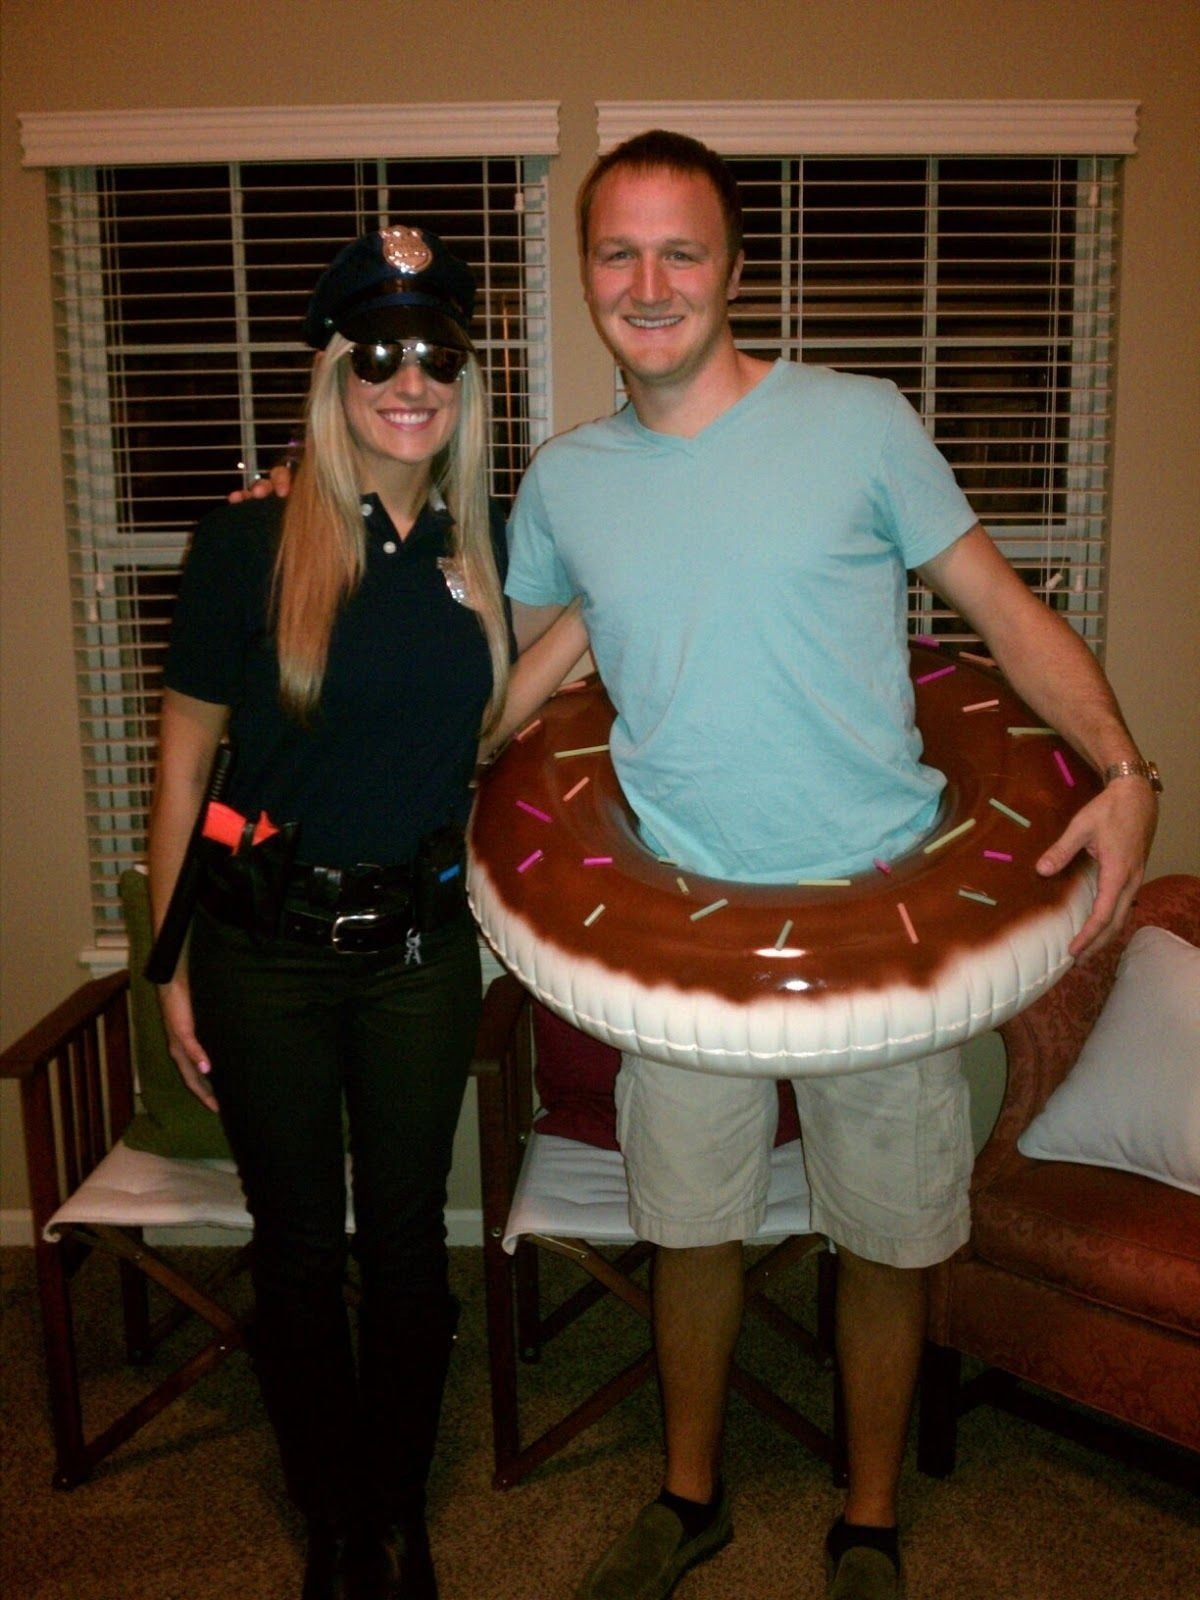 10 Famous Homemade Halloween Costume Ideas Couples cop and donut tired of the sexy policewoman costume bring a whole 2 2020